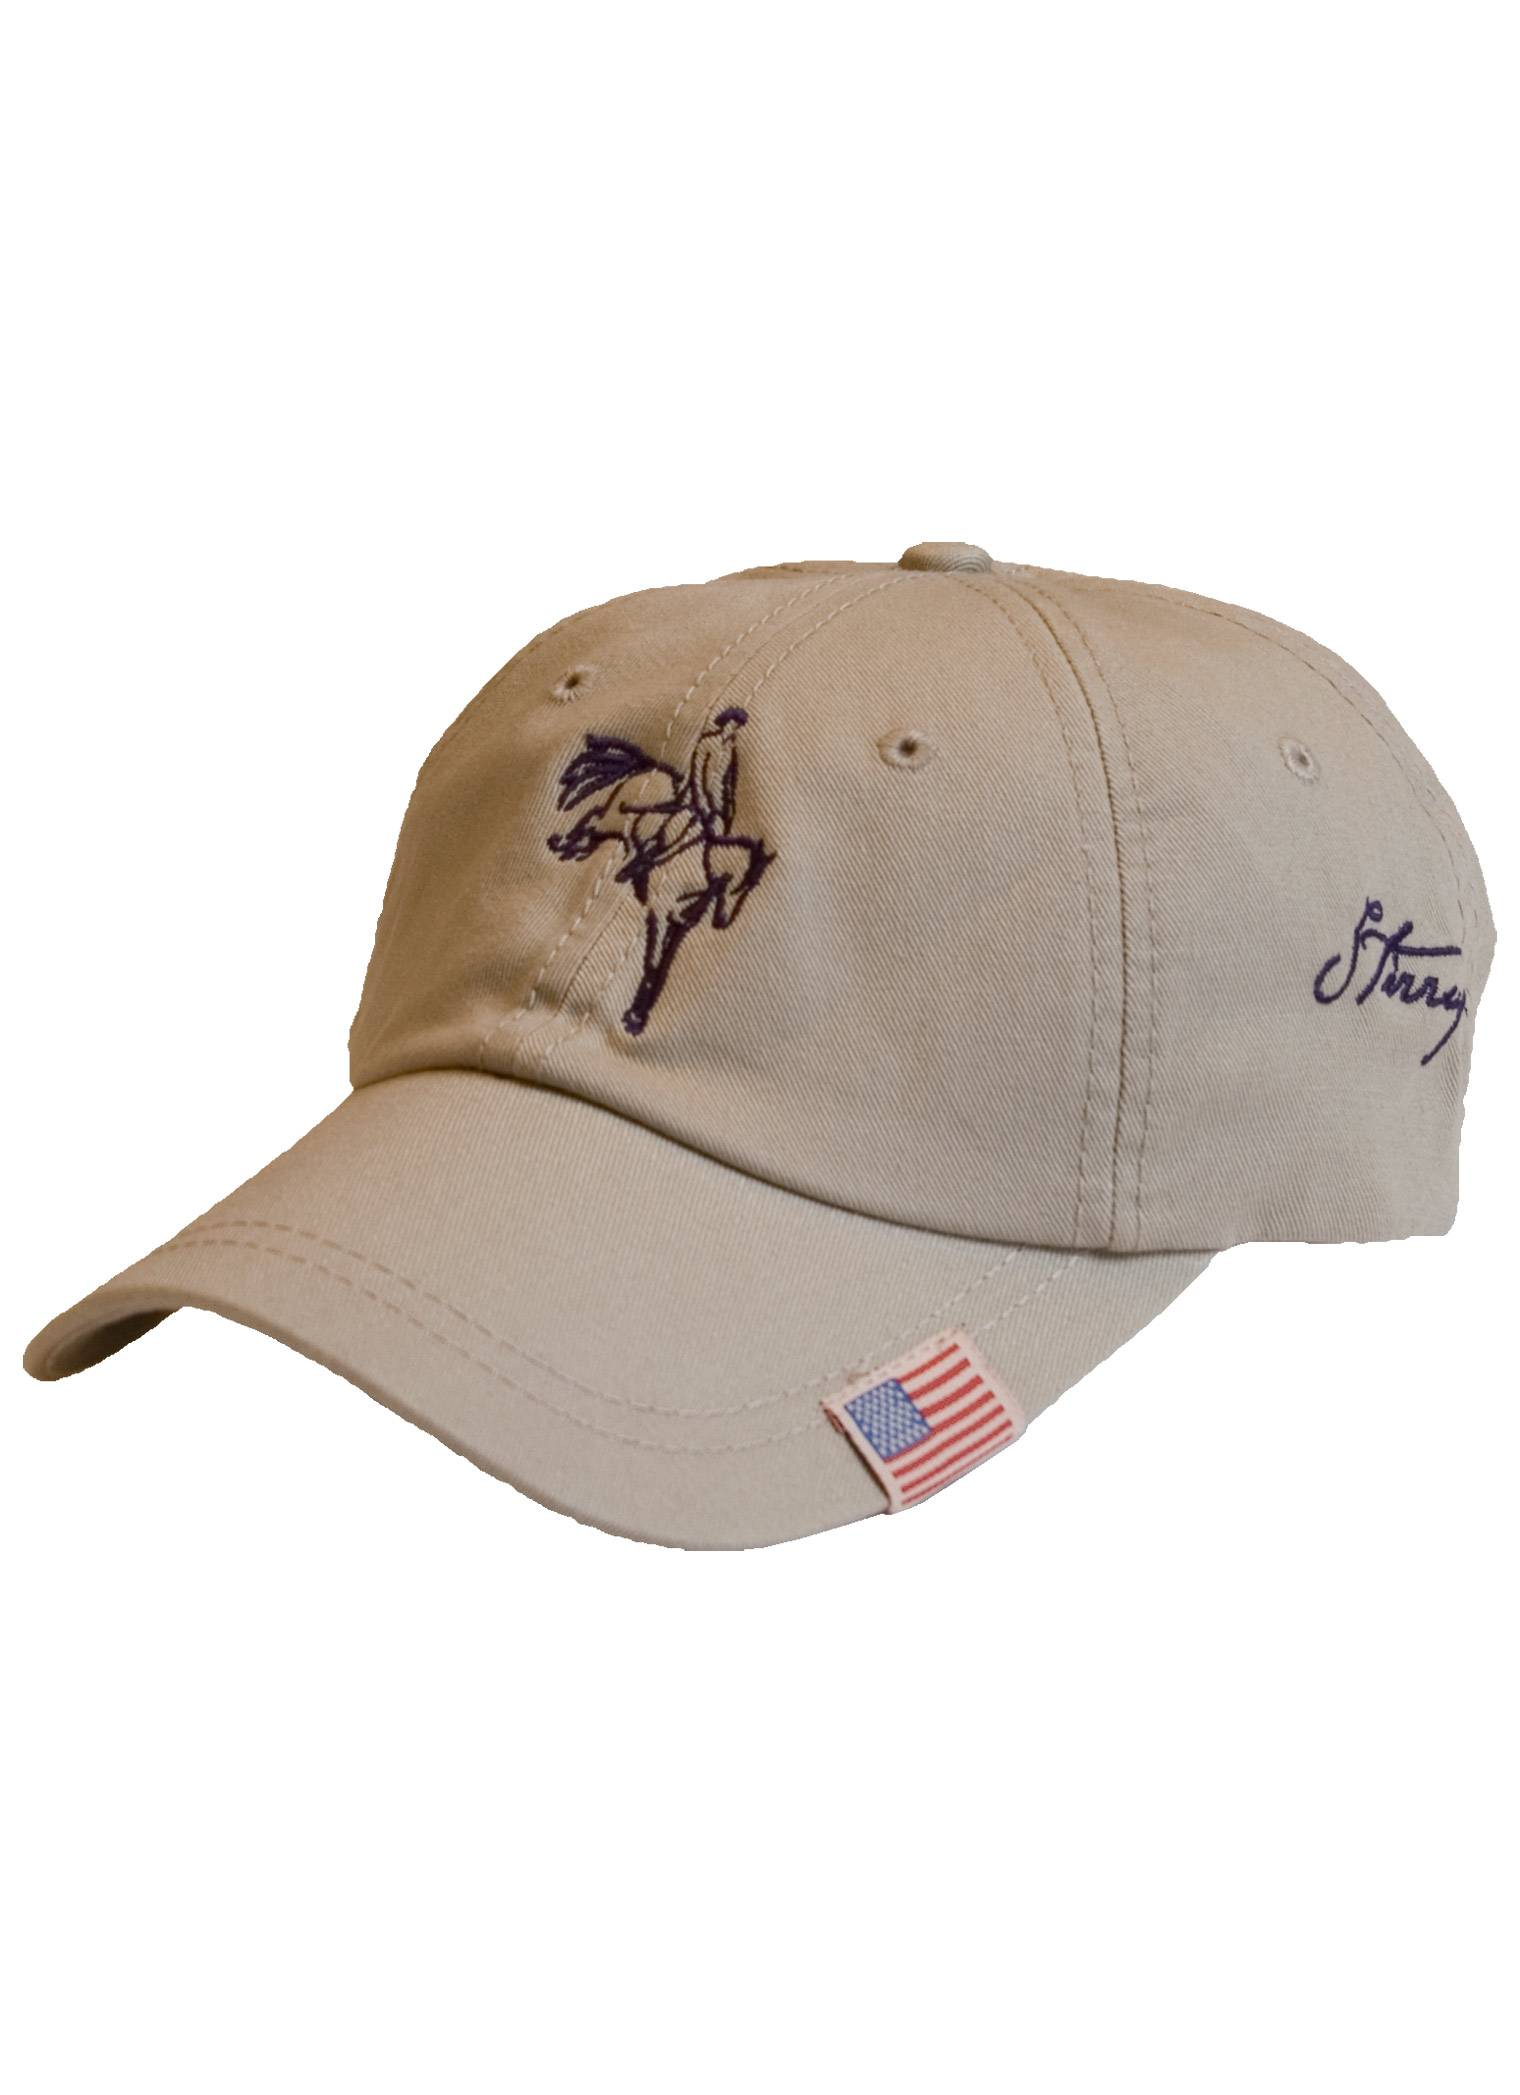 Stirrups Ladies Eventing Jumping Horse Cotton Twill Adj. Cap